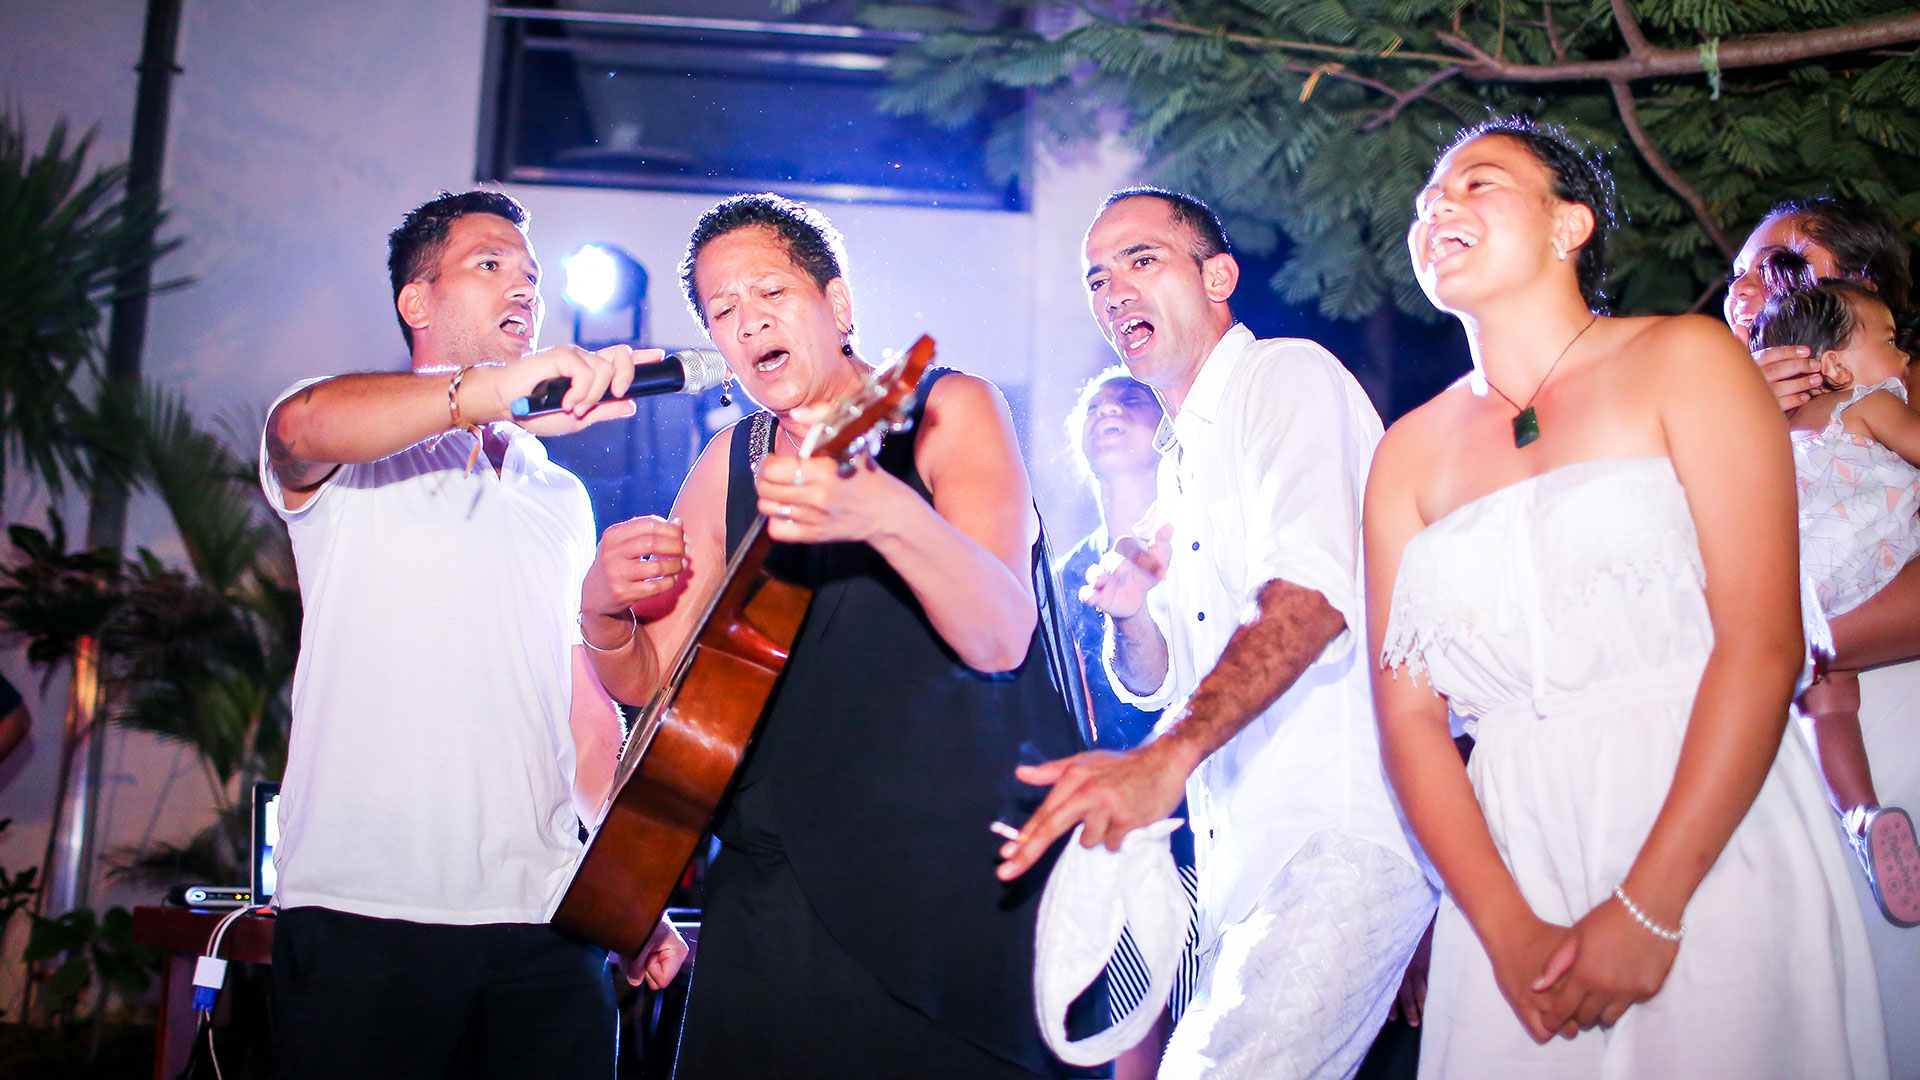 Brian Arohanui's 60th birthday party hold at Peninsula Bay Resort Nusa Dua photos taken by...